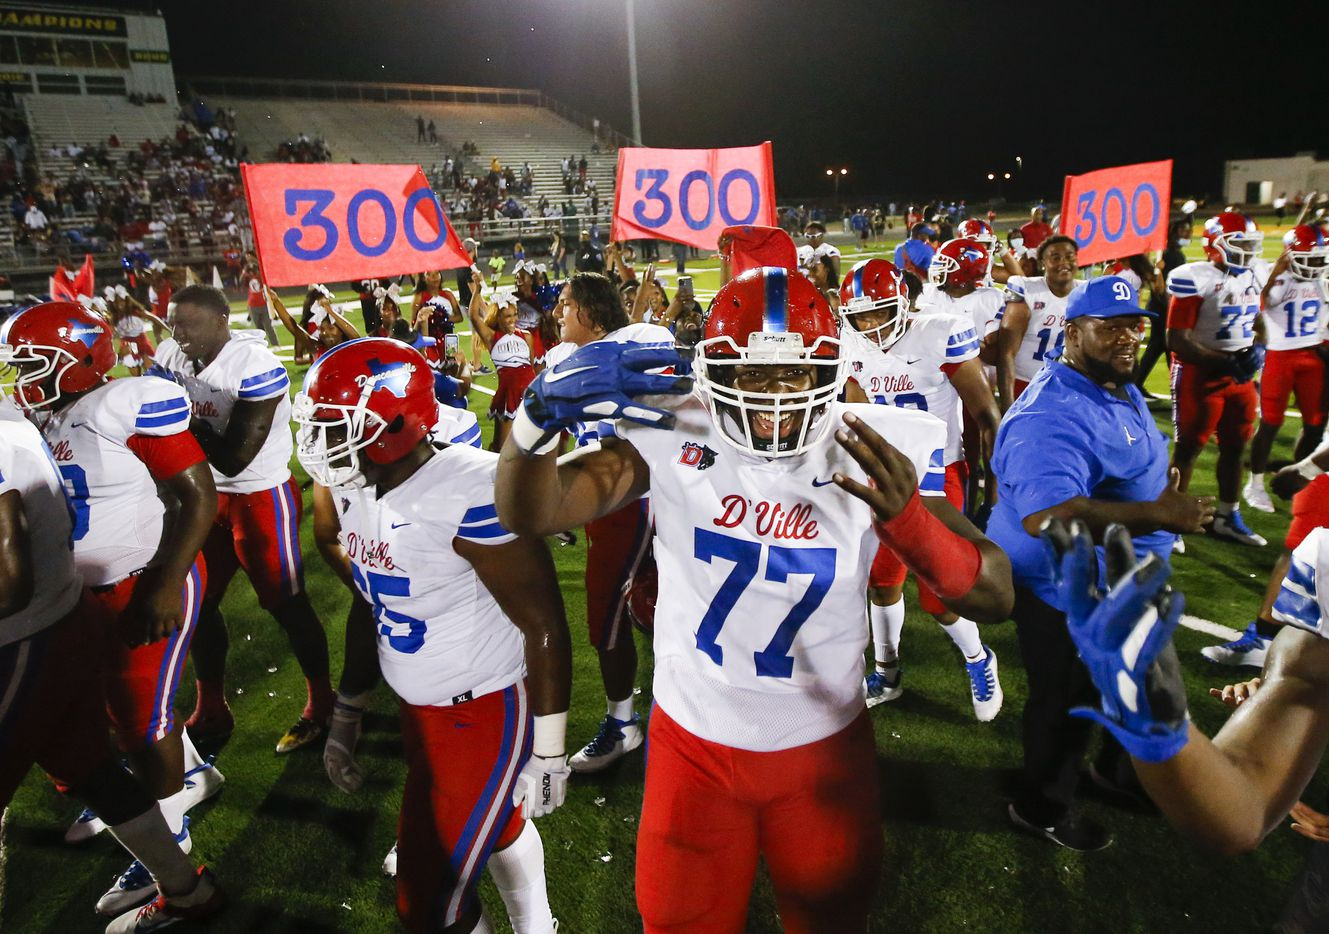 Duncanville celebrates a 42-21 win over DeSoto after a high school football game at DeSoto High School, Friday, September 17, 2021. It was Duncanville head coach Reginald Samples' 300th career win. (Brandon Wade/Special Contributor)